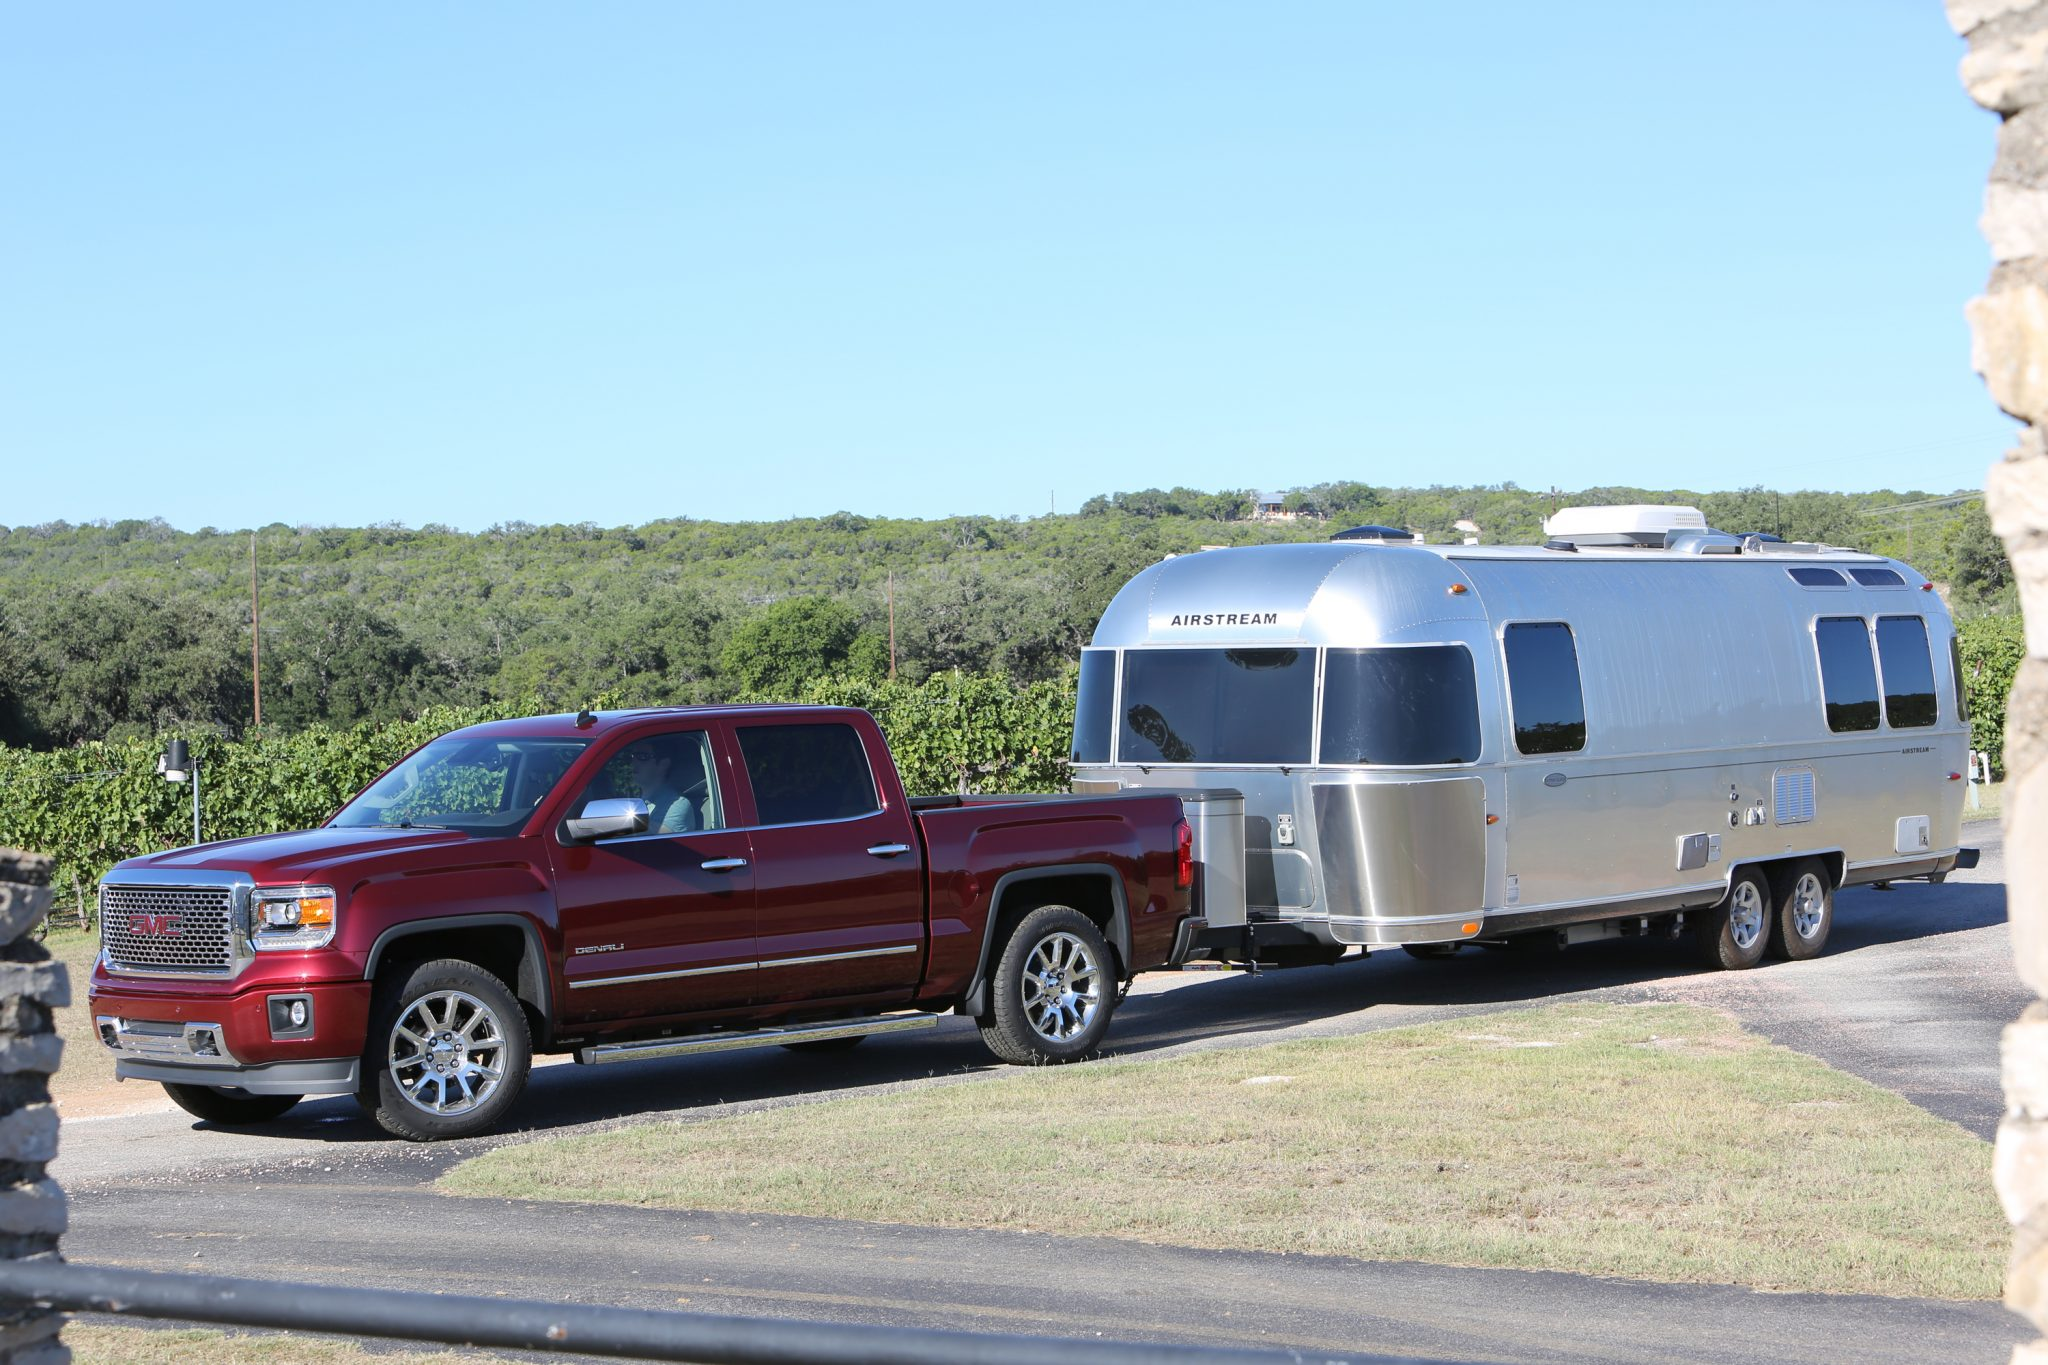 2015 gmc sierra 1500 max trailering rating stays at 12 000 the news wheel. Black Bedroom Furniture Sets. Home Design Ideas